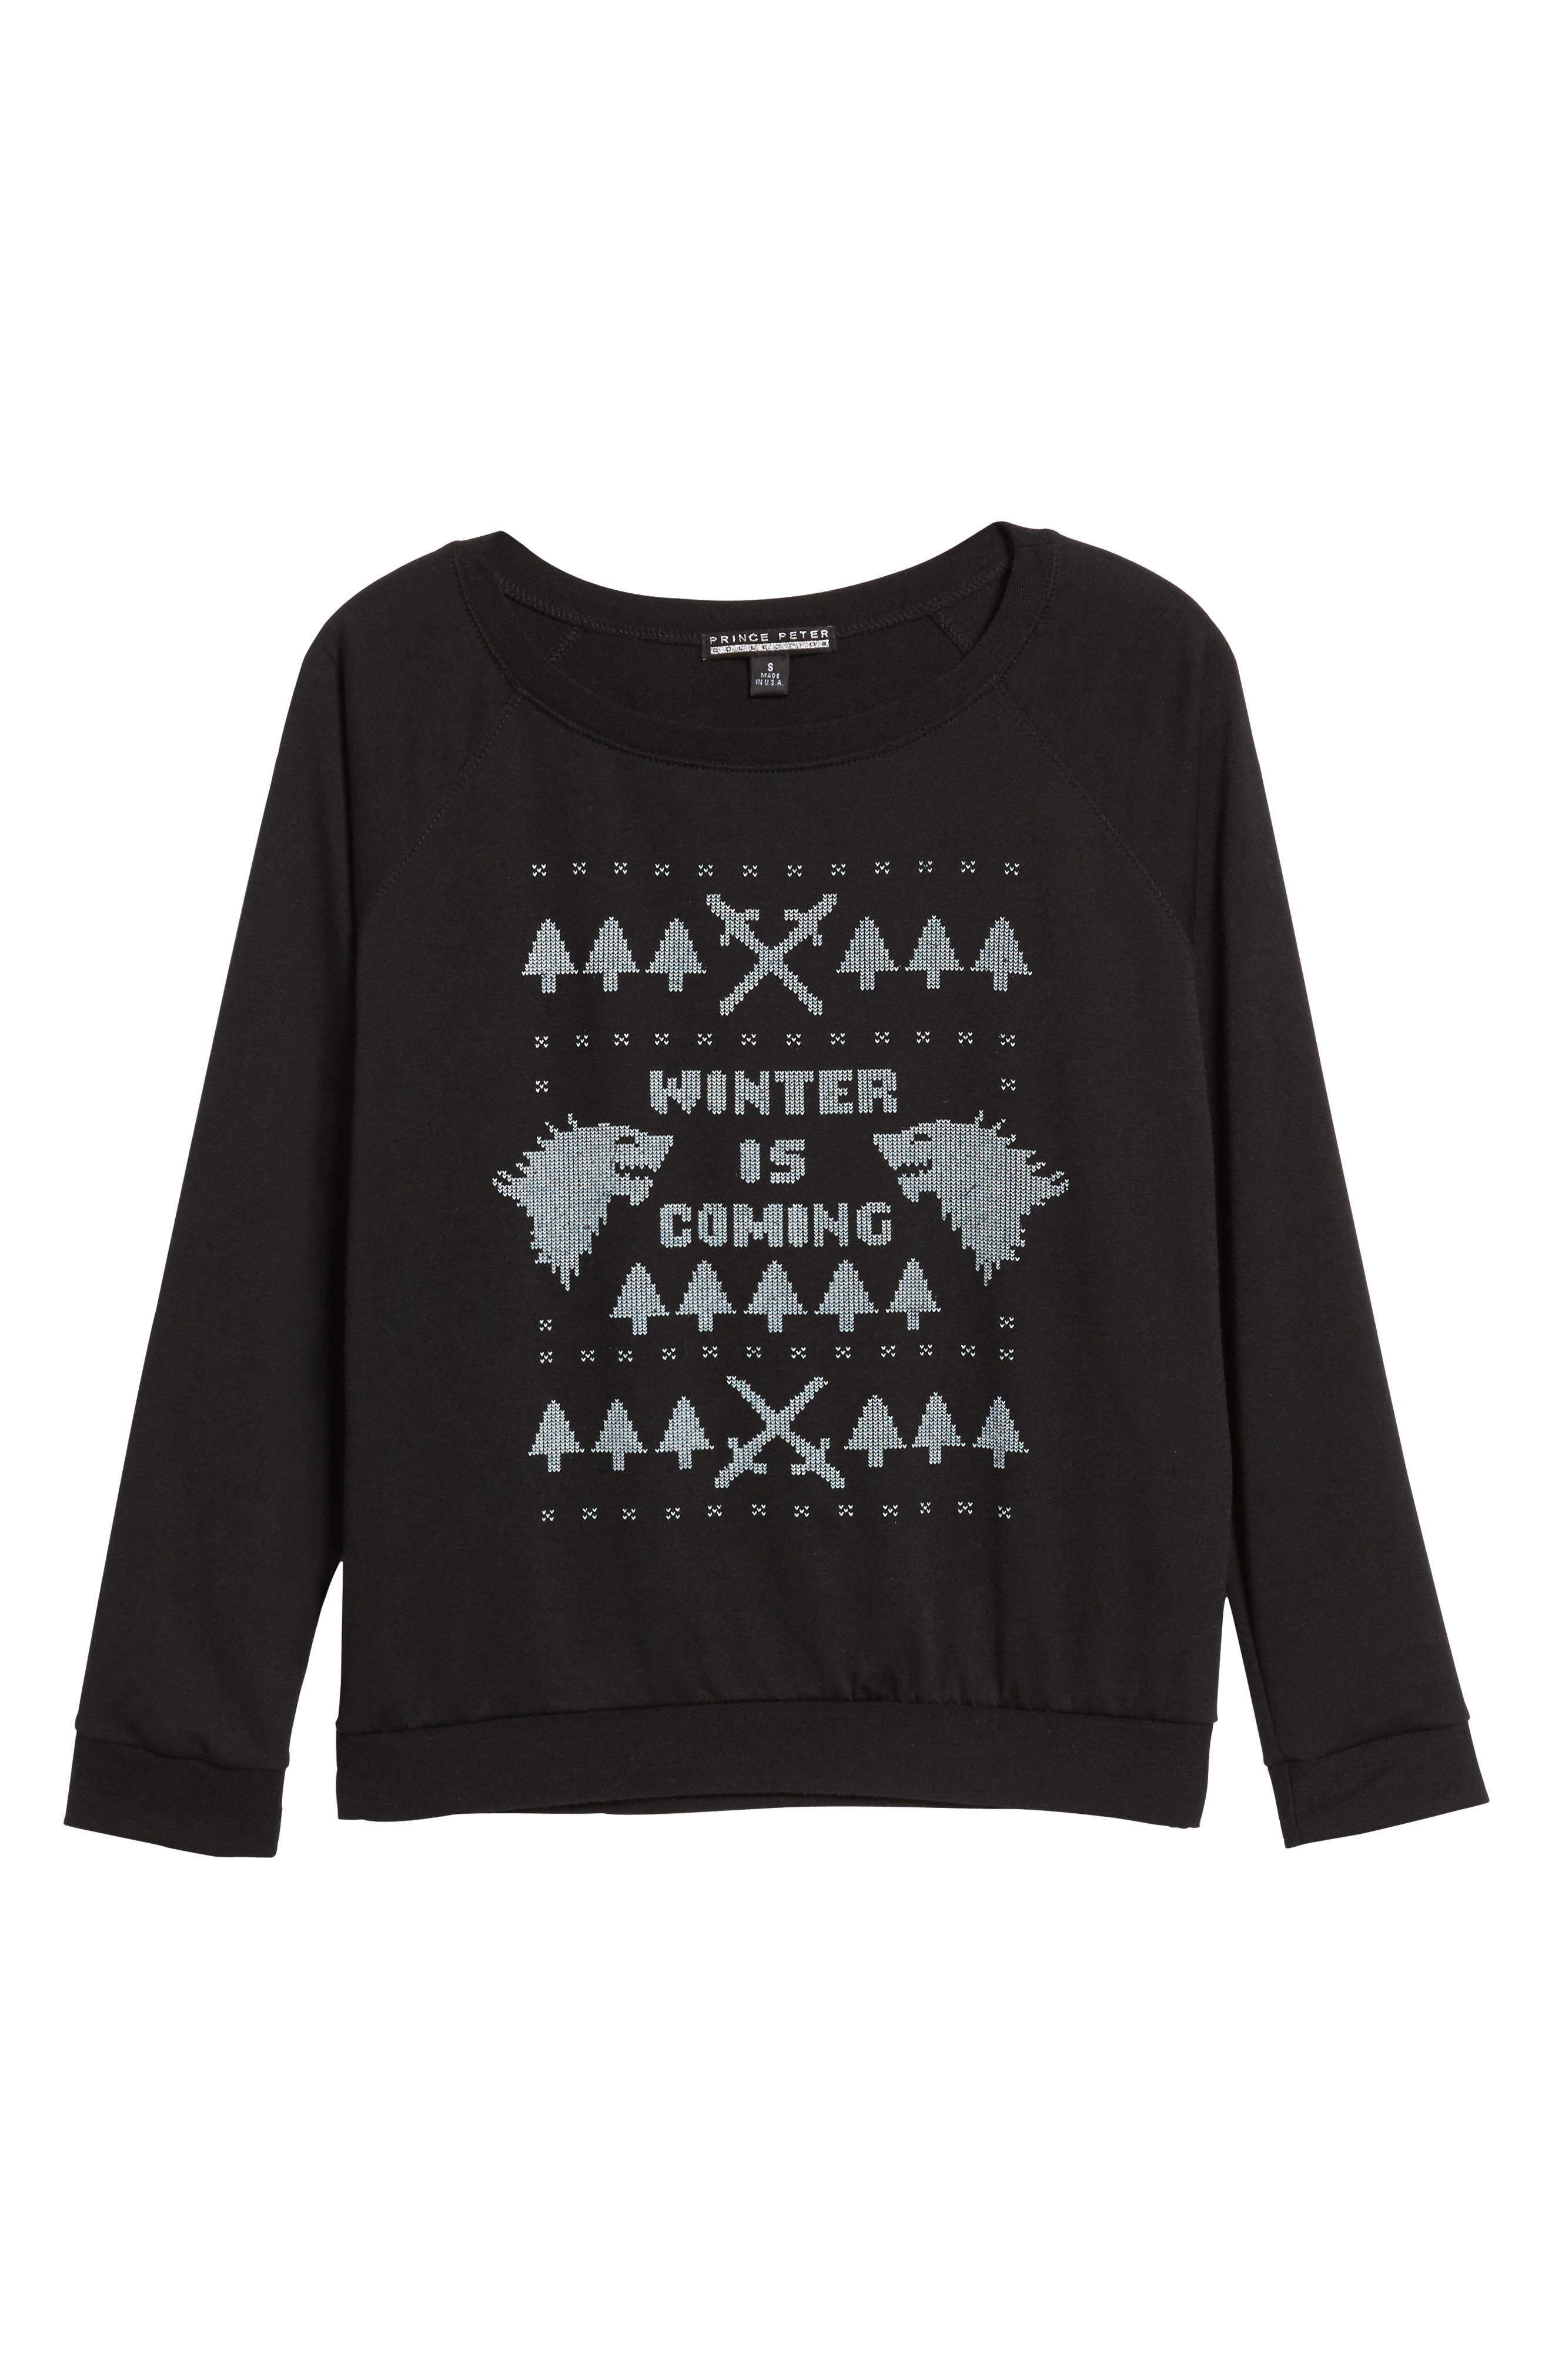 Winter Is Coming Sweatshirt,                             Alternate thumbnail 6, color,                             001